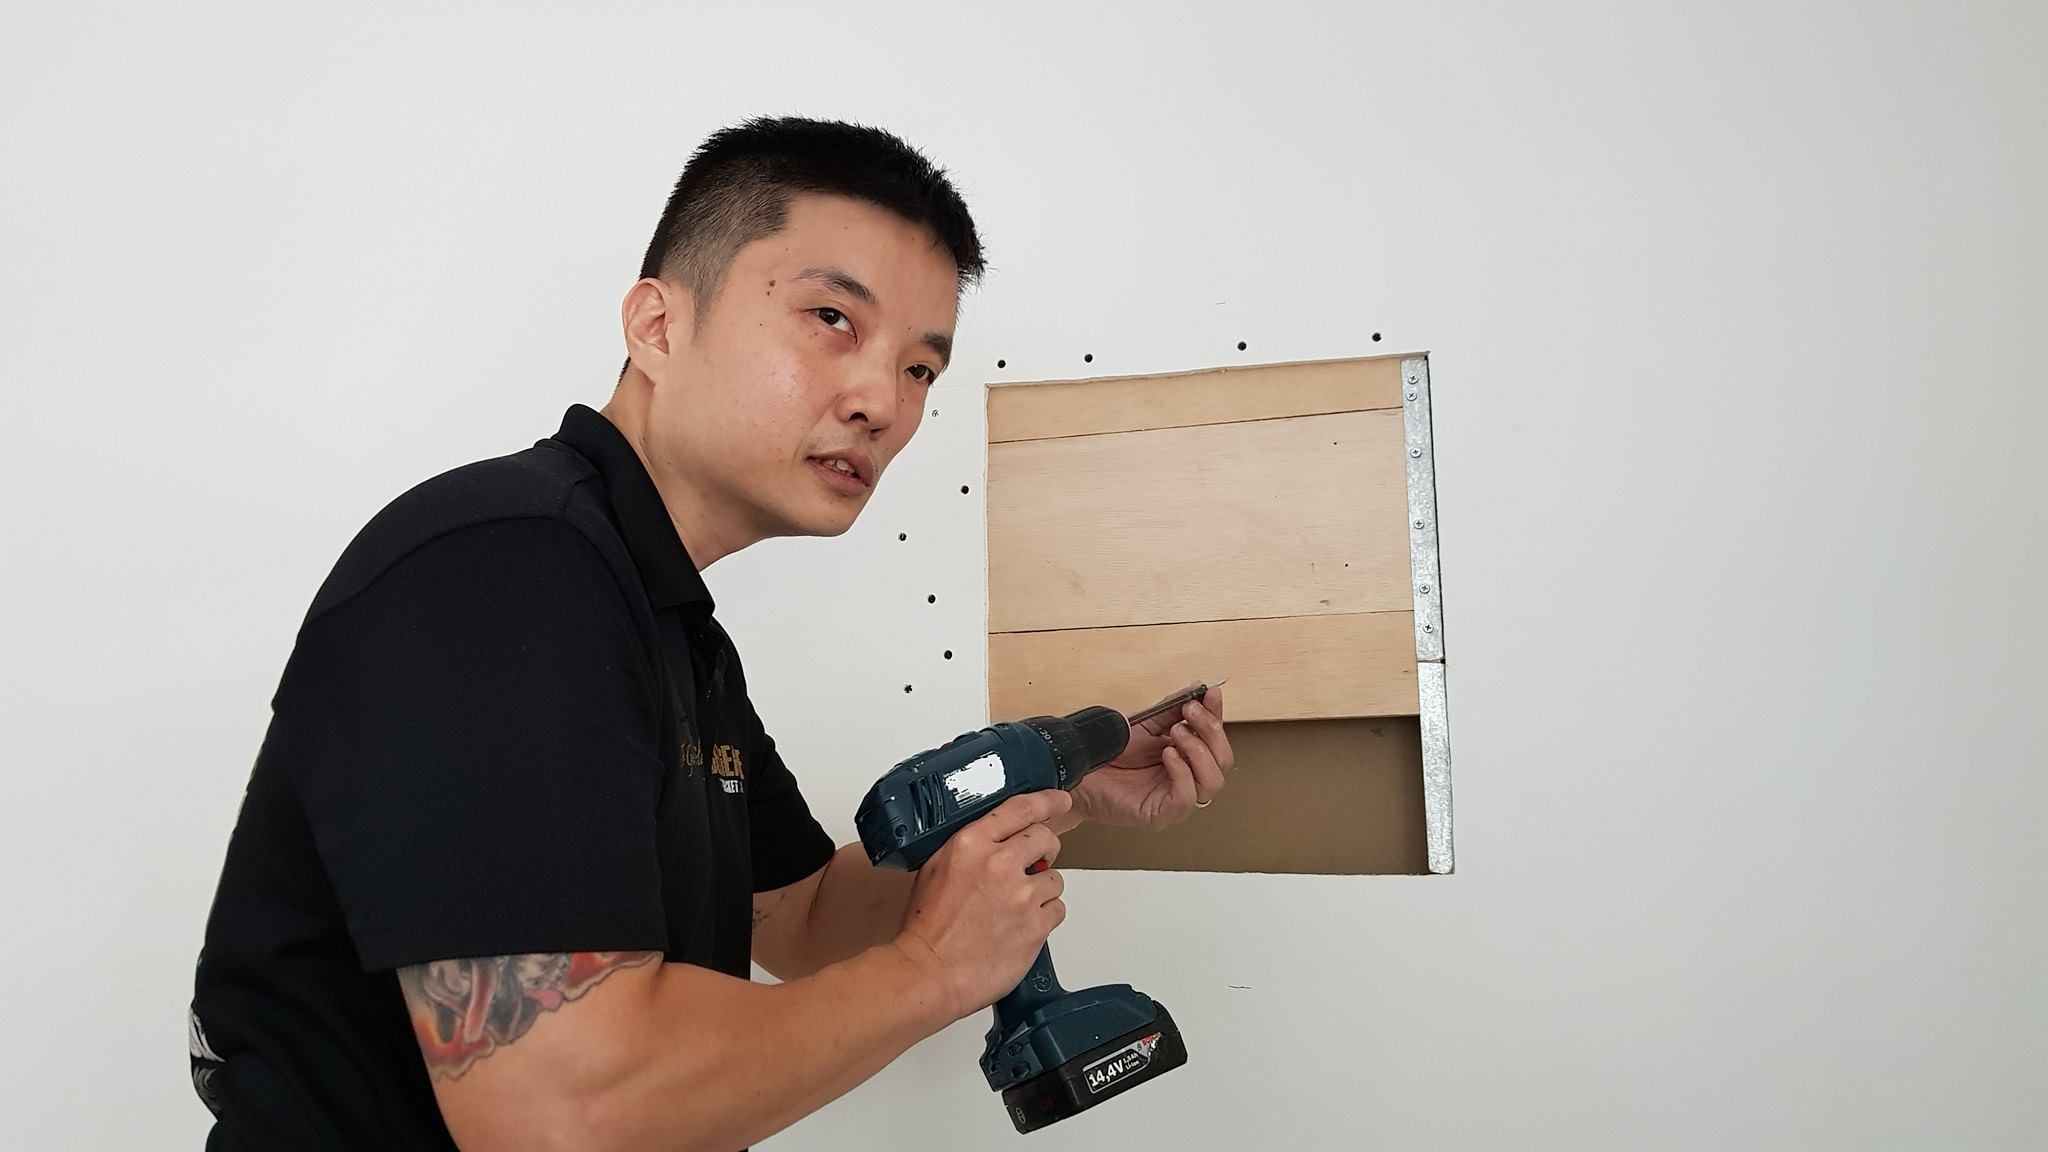 Partition wood reinforcement 3 1 - Mount TV On Drywall